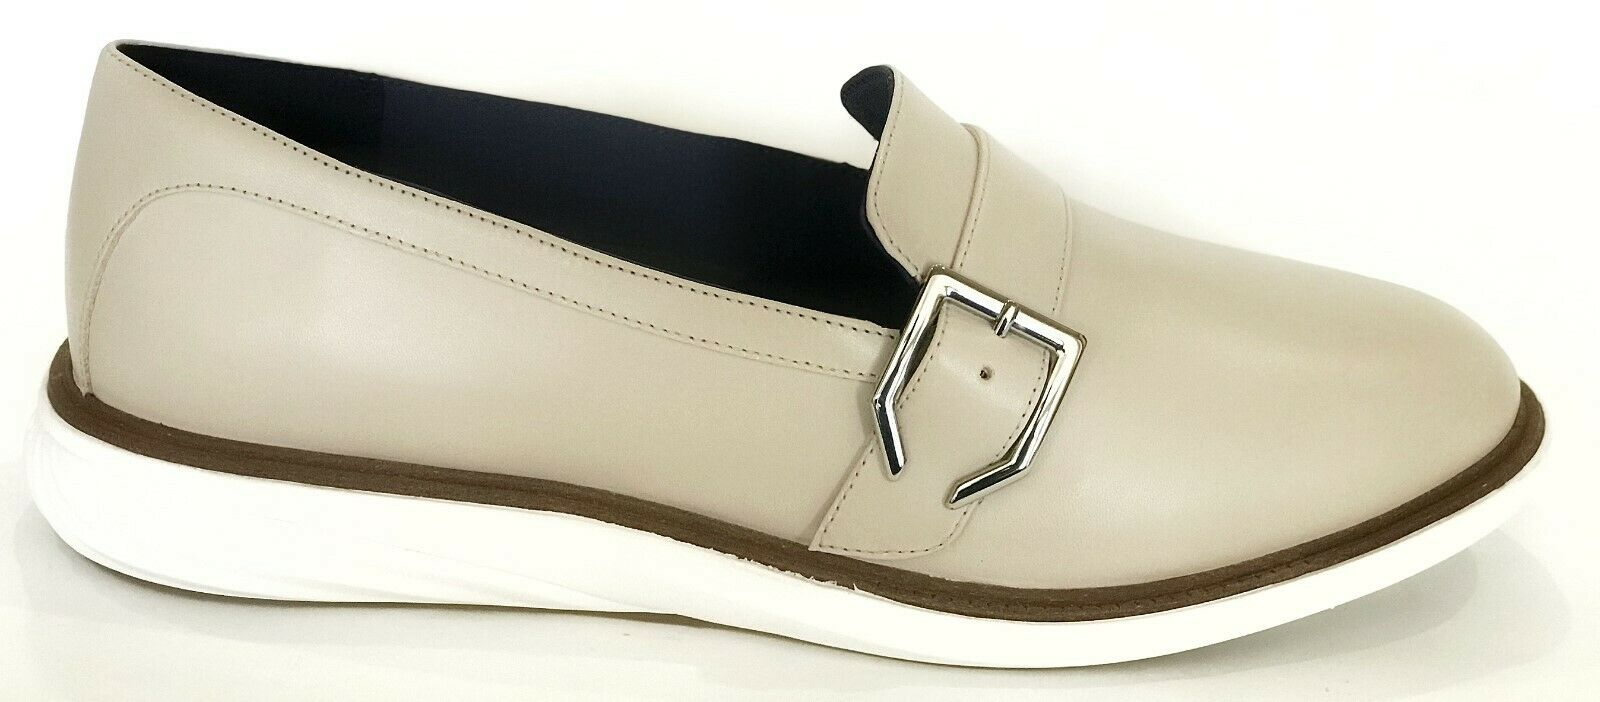 Cole Haan Womens GrandEvolution Leather Leather Leather Slip On shoes Pumice 9 NEW IN BOX a27617